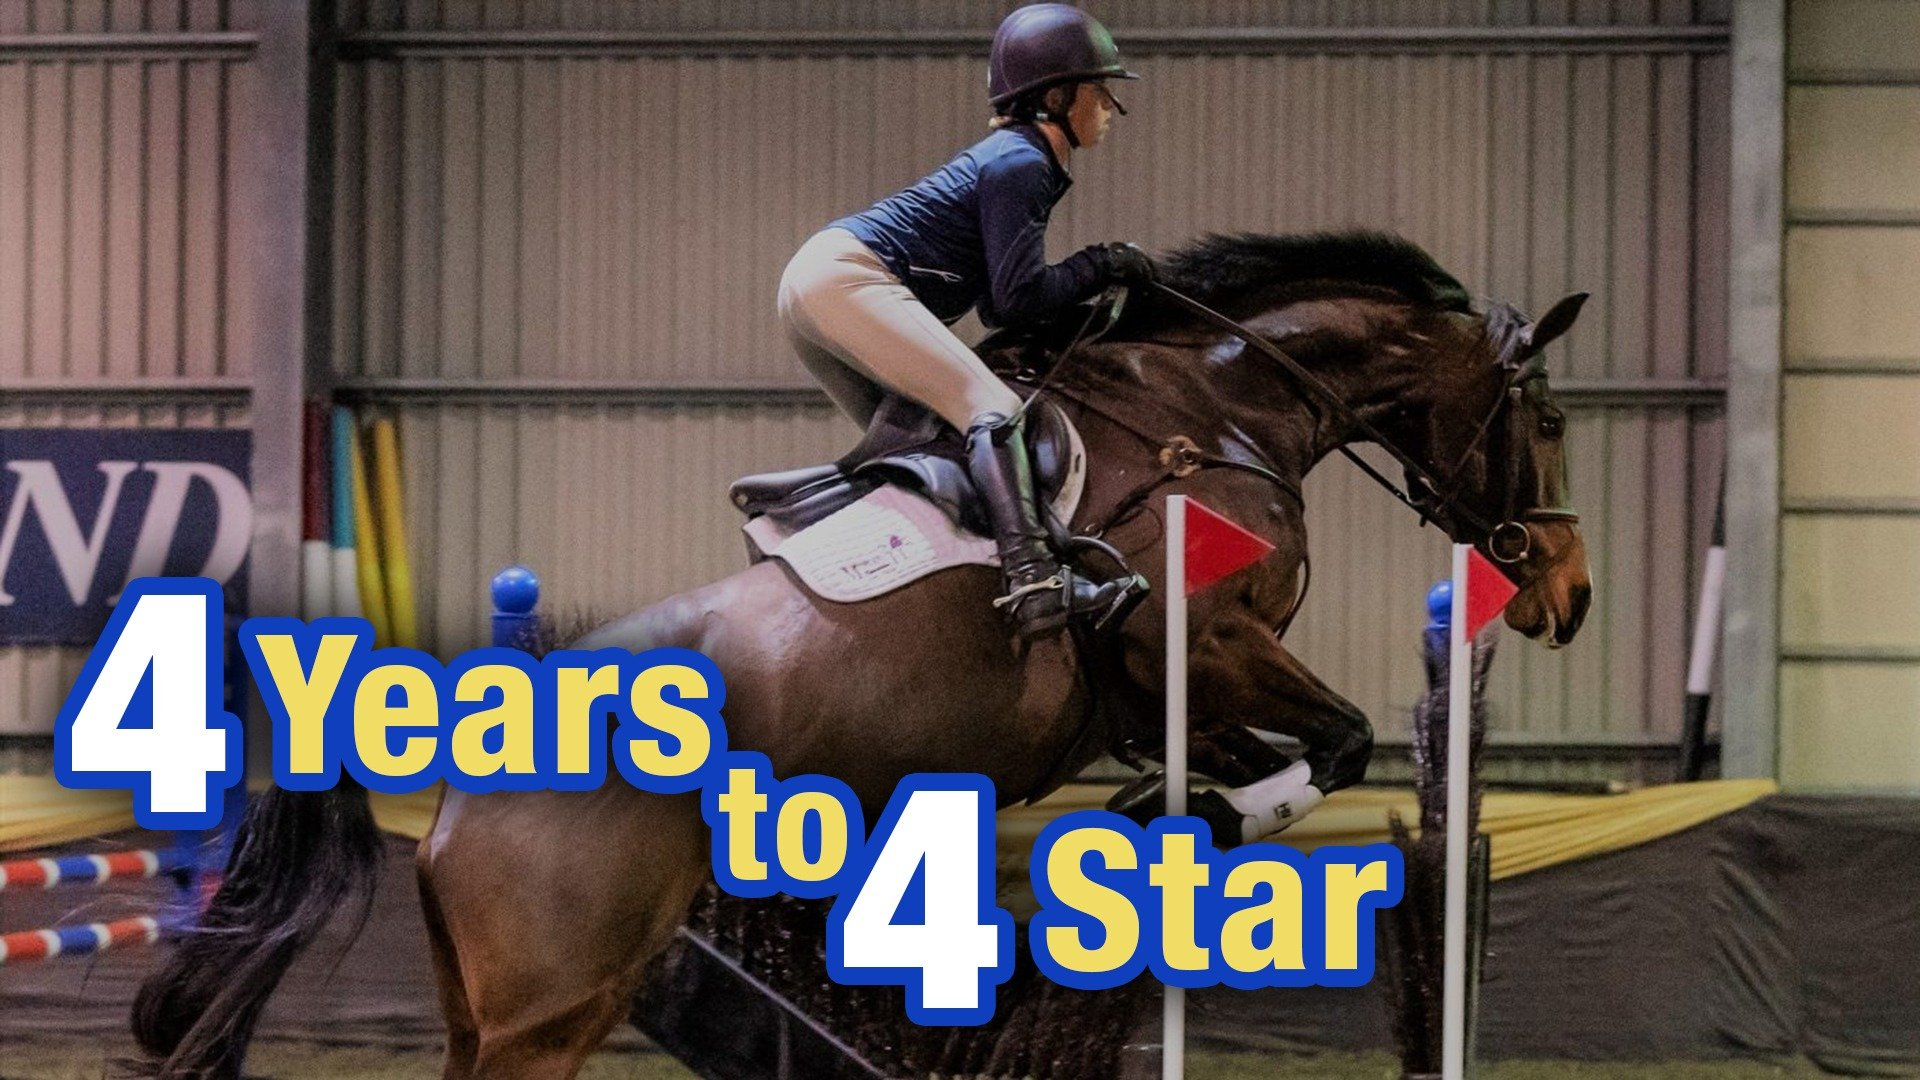 4 Years to 4 Star